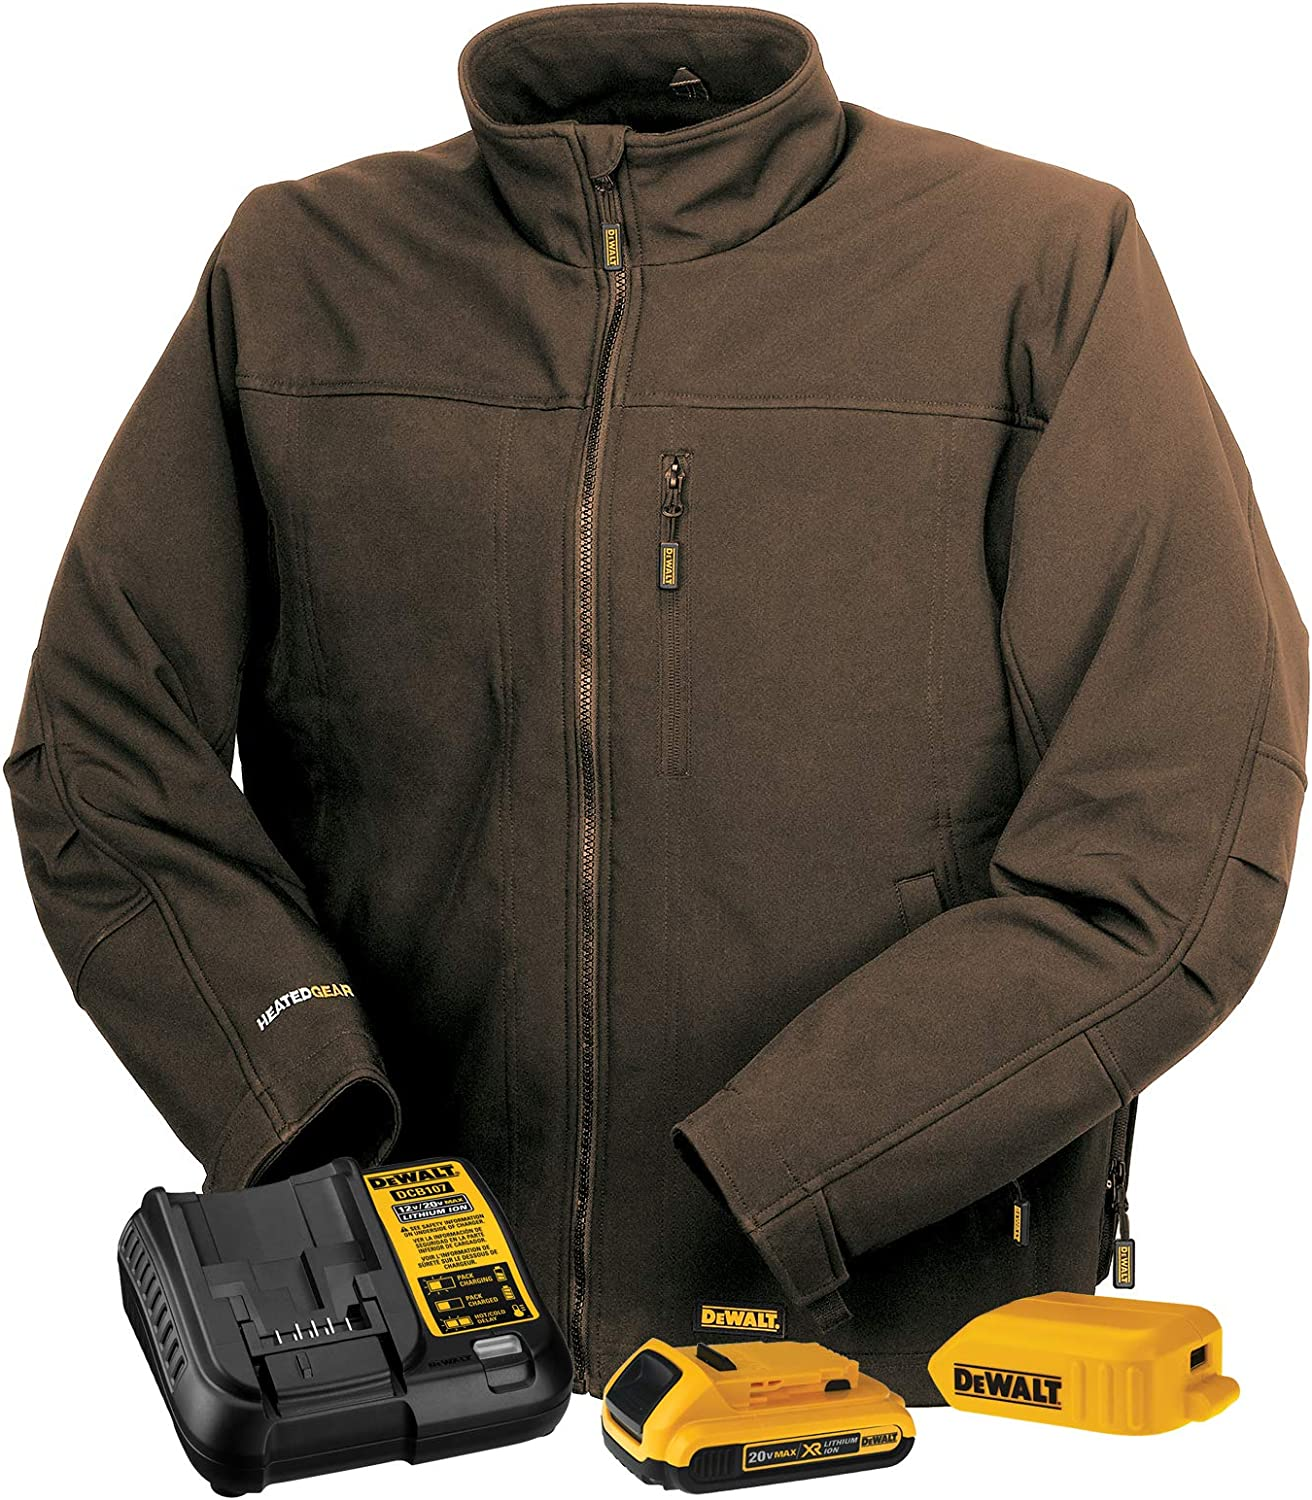 DEWALT DCHJ060A Heated Soft Shell Jacket Kit with 2.0Ah Battery and Charger